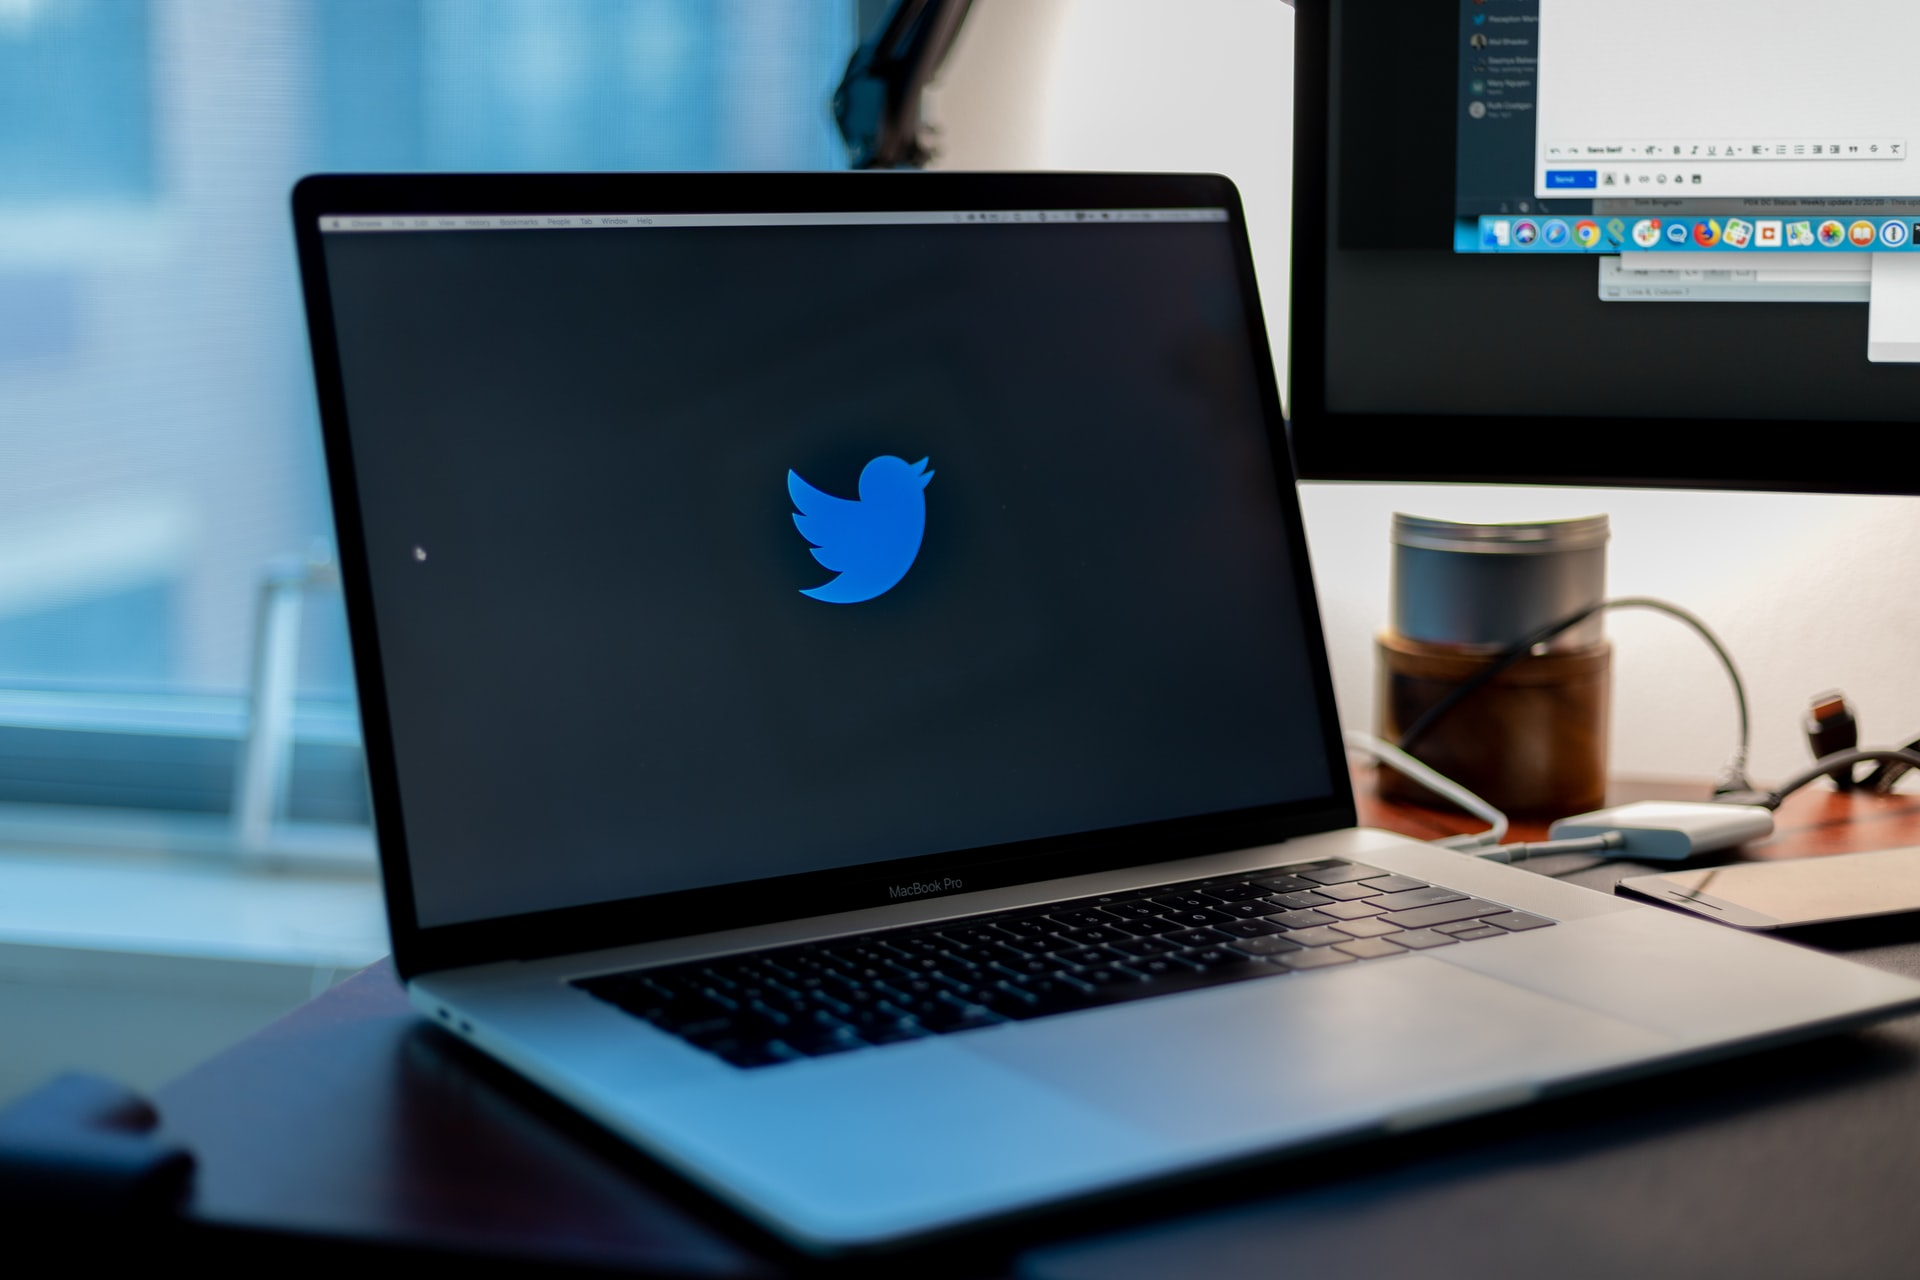 A laptop featuring Twitter's logo on the screen